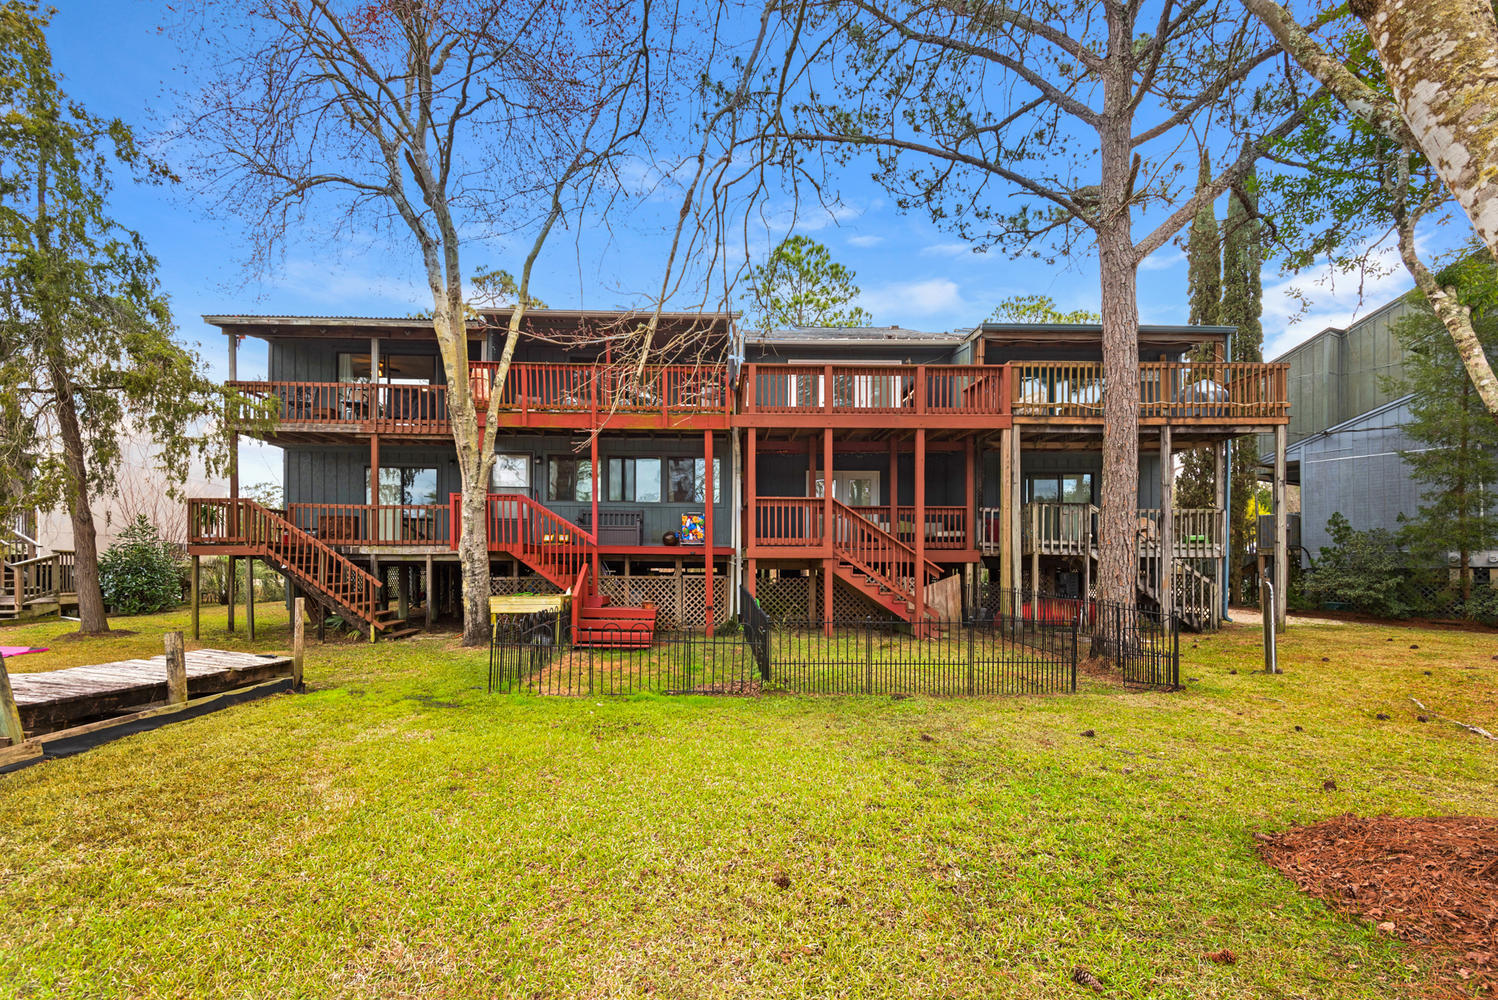 A 2 Bedroom 2 Bedroom Swift Bayou T/h Unit 22 Townhome